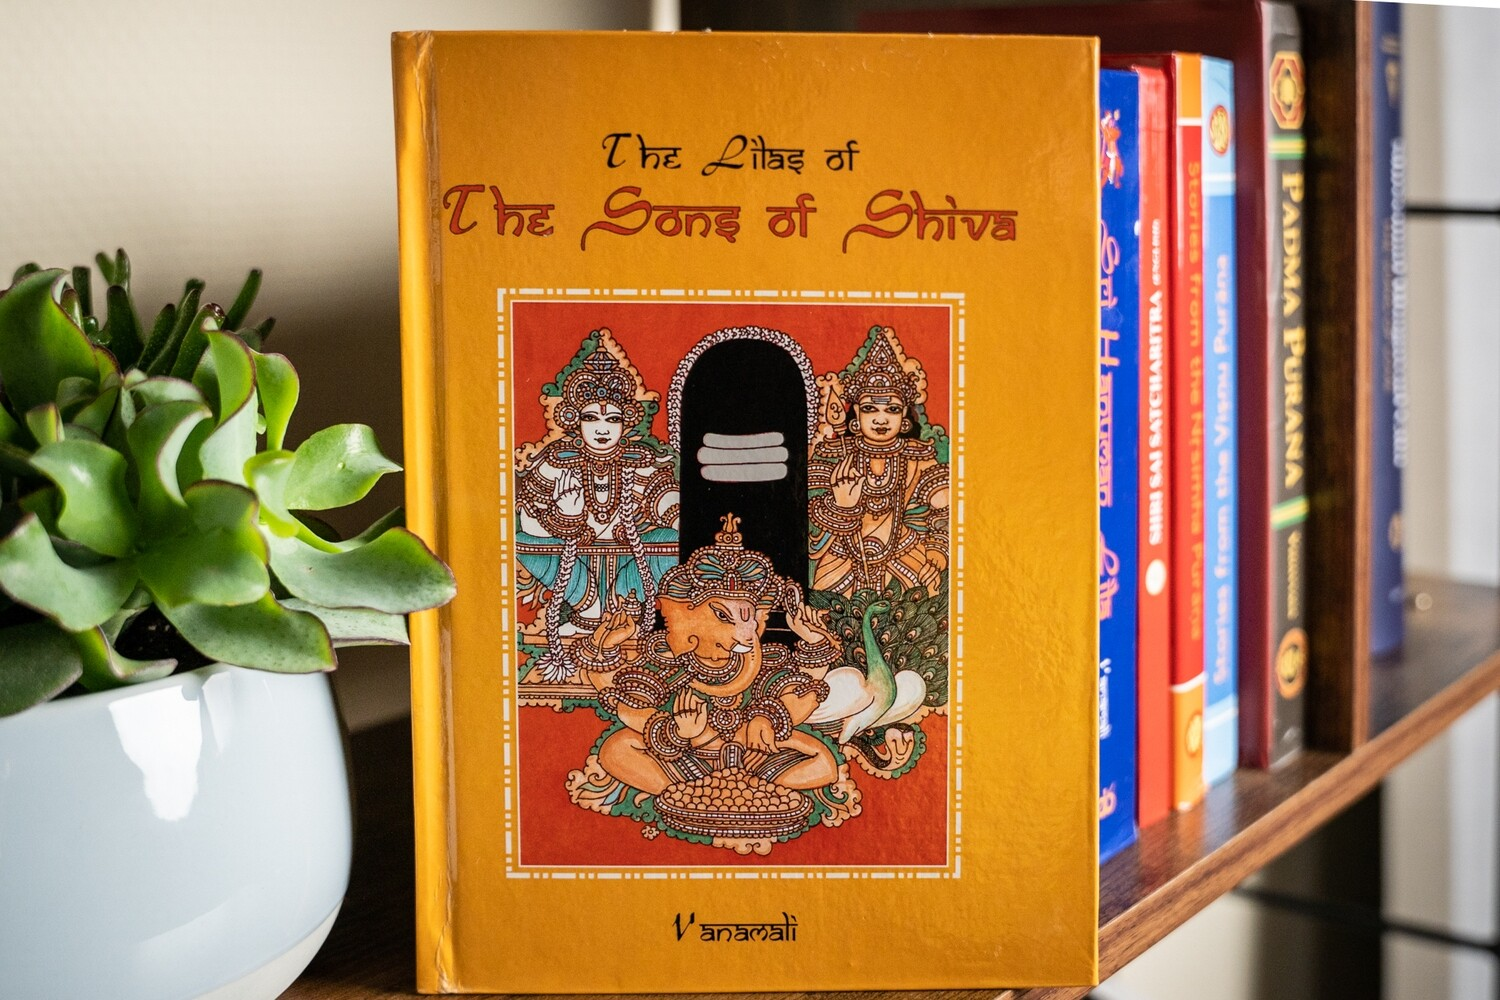 The Lilas of The Sons of Shiva. Vanamali